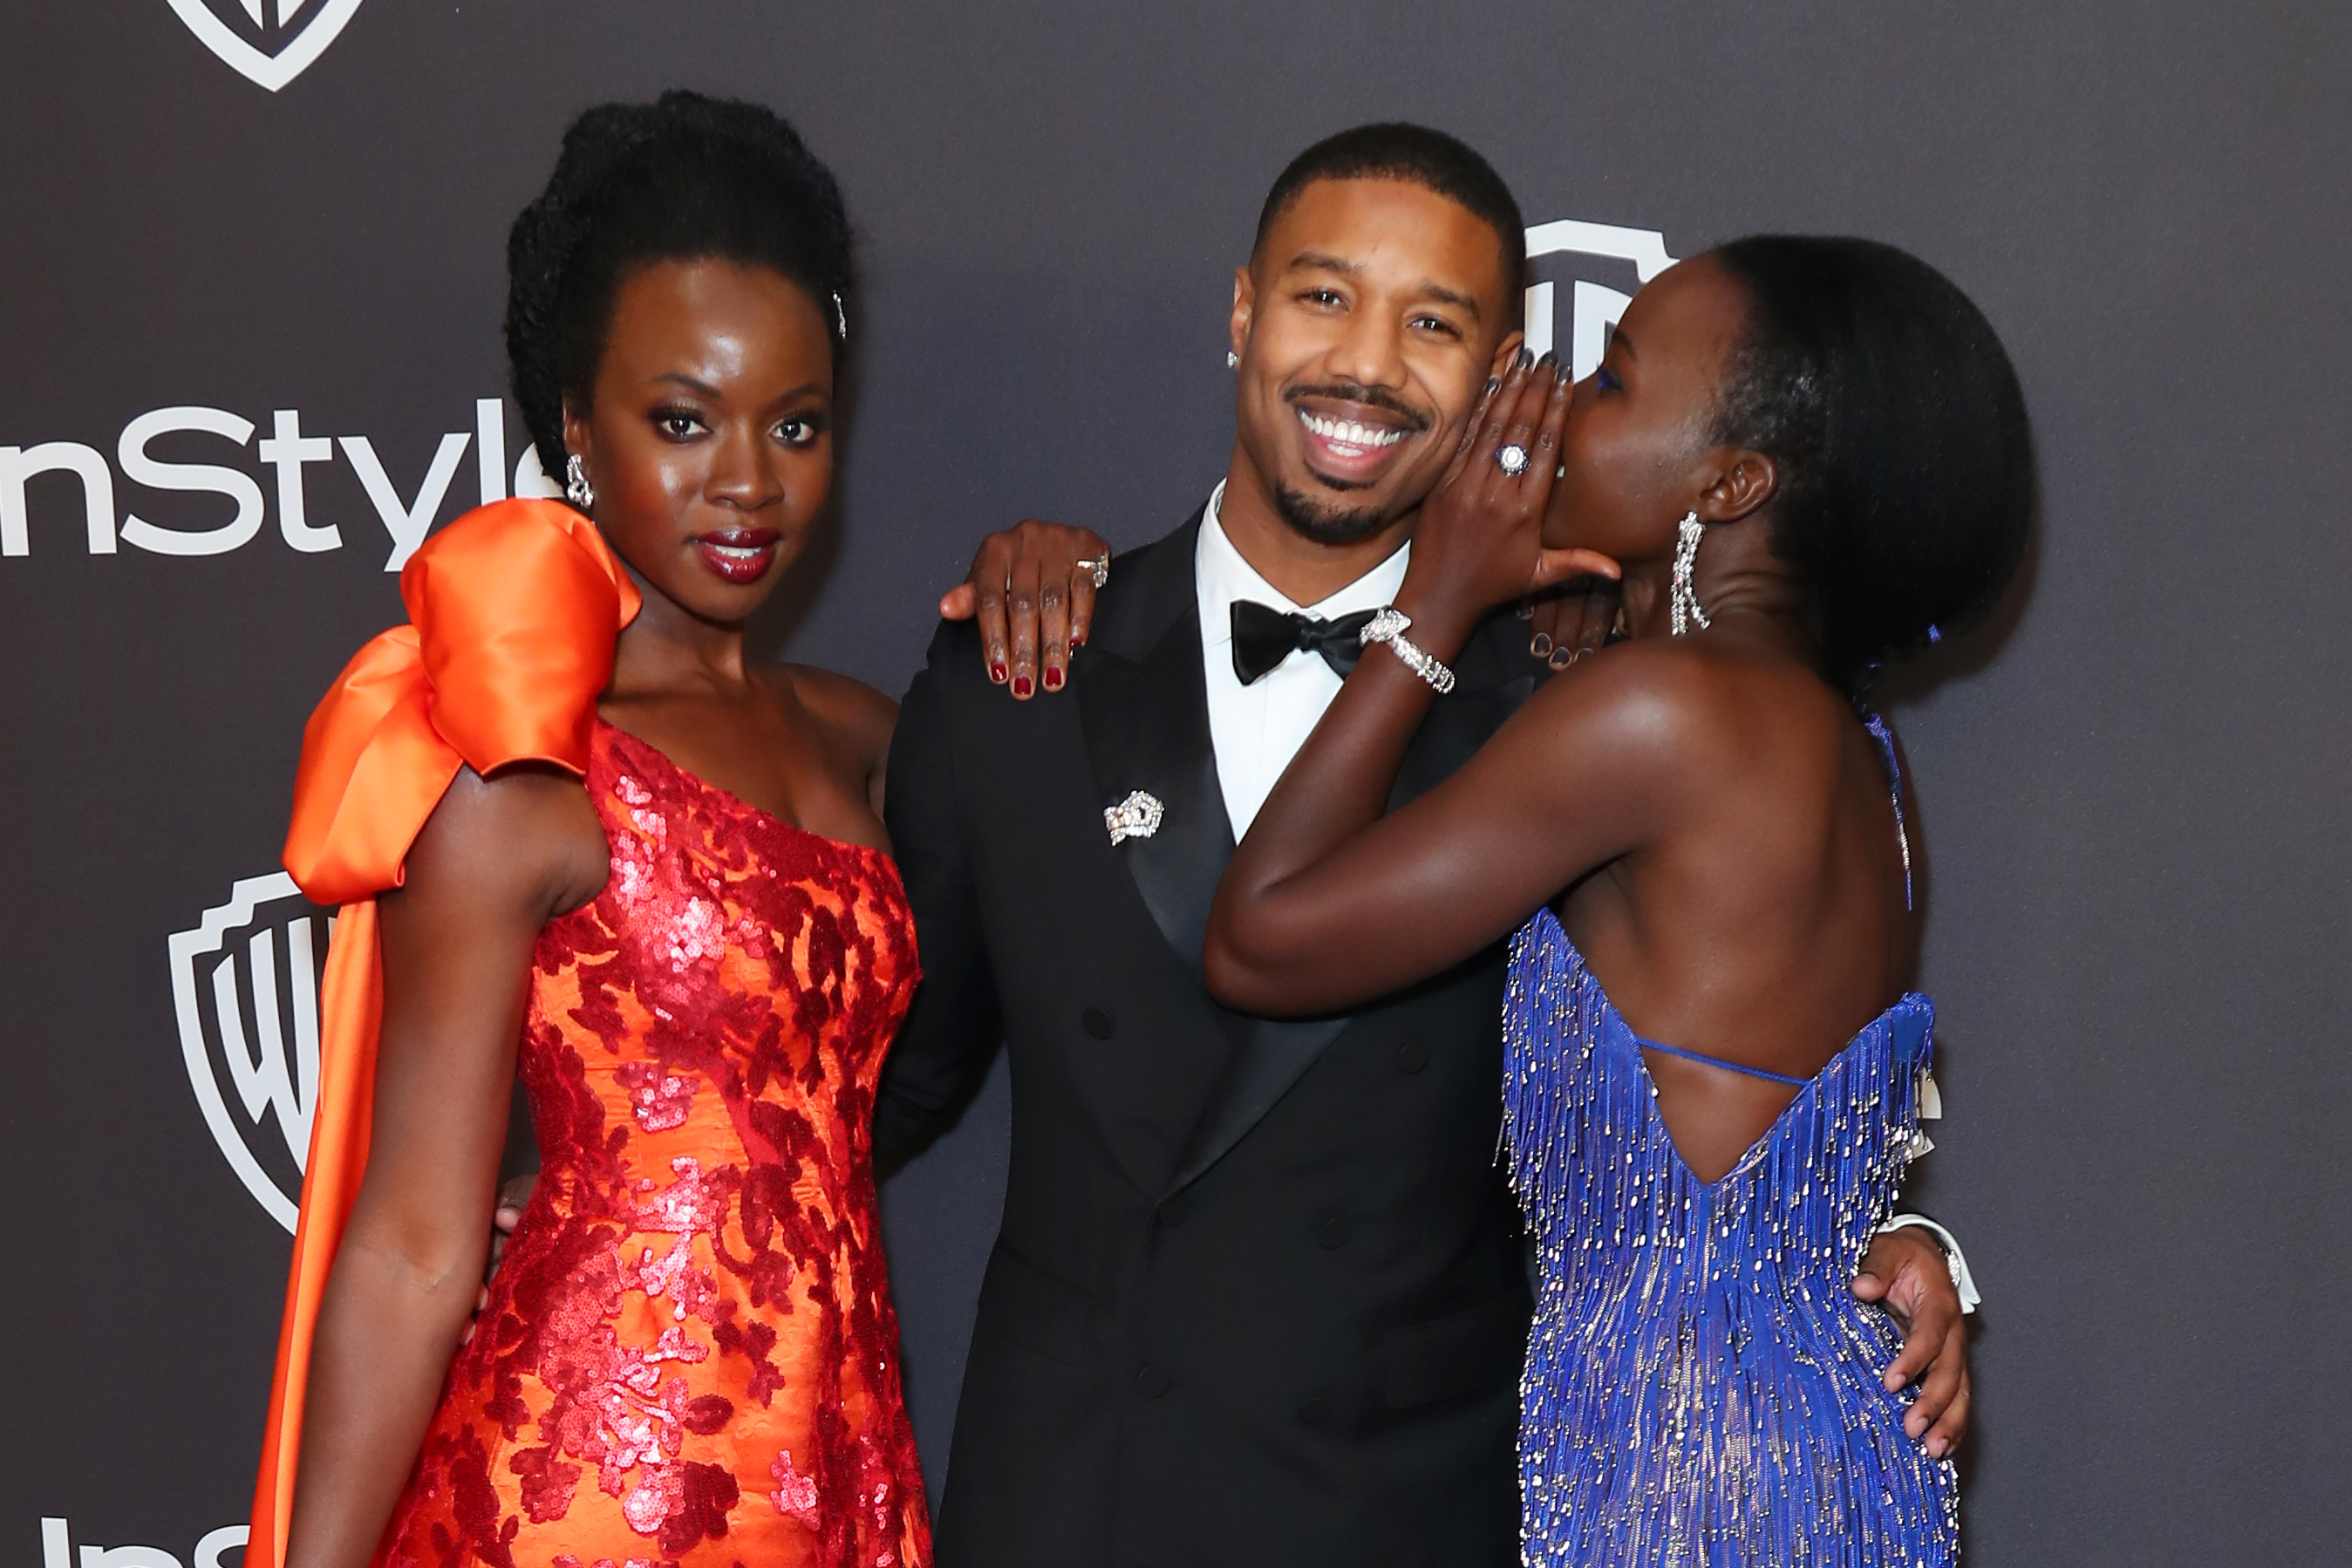 (L-R) Danai Gurira, Michael B. Jordan, and Lupita Nyong'o attends InStyle And Warner Bros. Golden Globes After Party 2019 at The Beverly Hilton Hotel on January 06, 2019 in Beverly Hills, California. (Photo by Leon Bennett/FilmMagic)